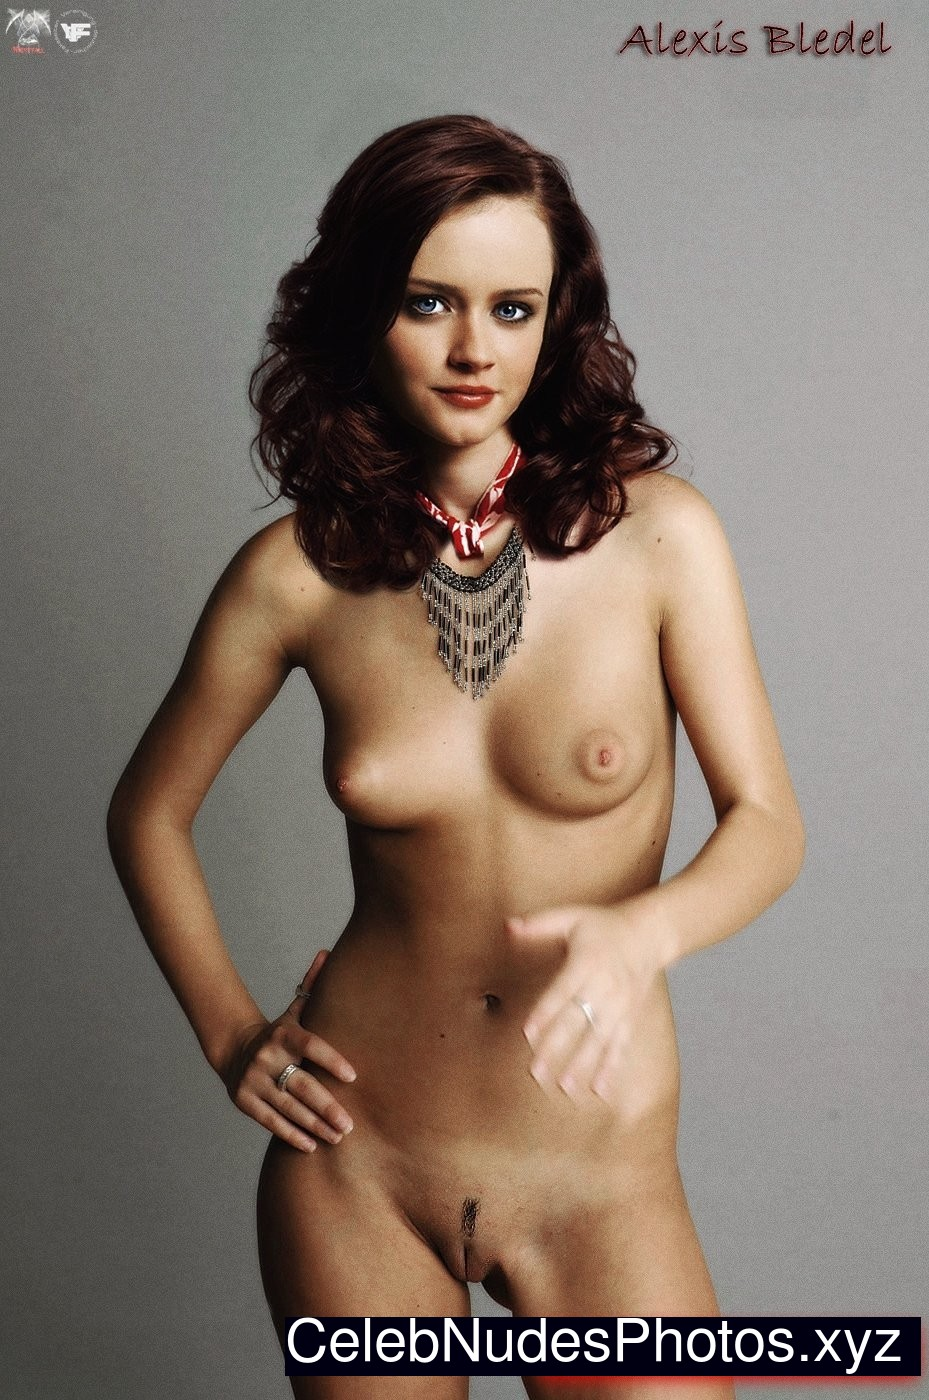 Alexis bledel and nude